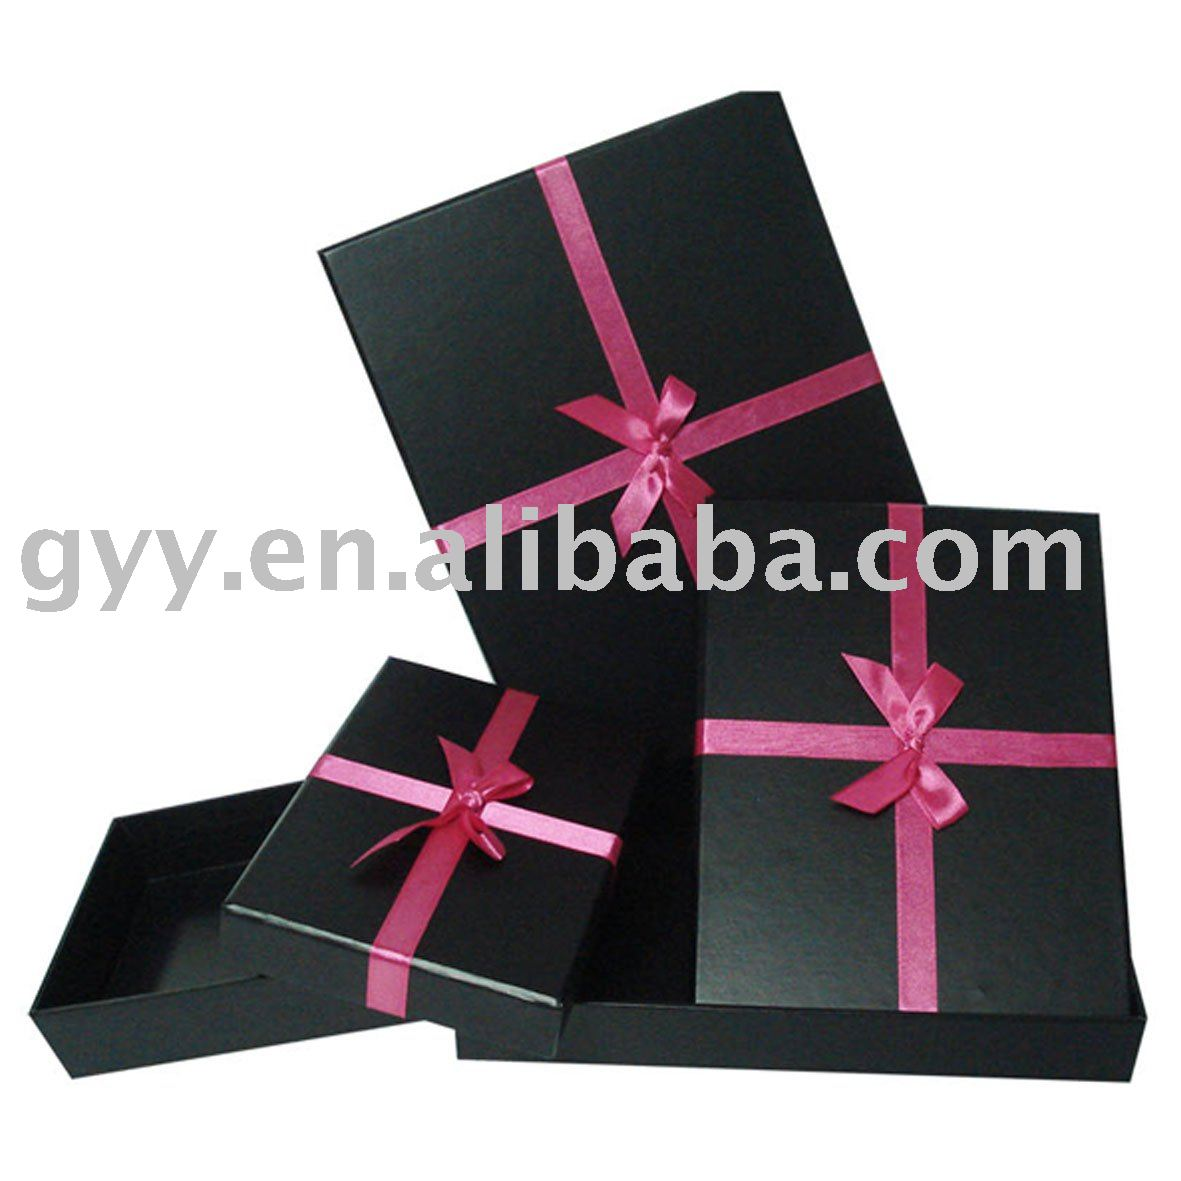 bo te d 39 emballage cadeau image coffret cadeau id de produit 390552399. Black Bedroom Furniture Sets. Home Design Ideas